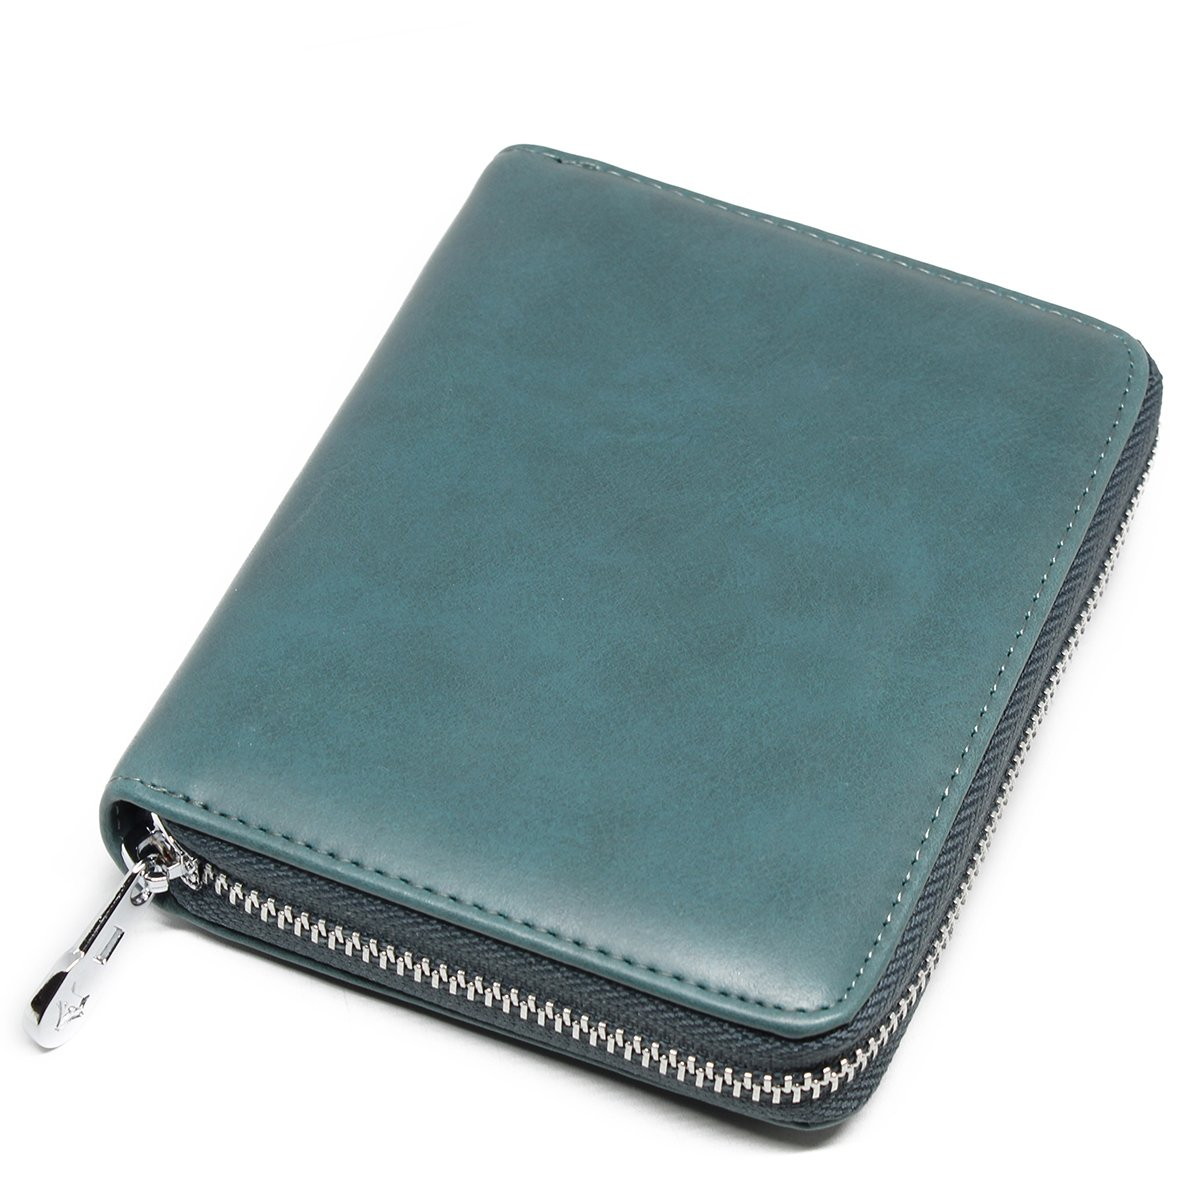 imeetu 24-slots Card Holder Case with RFID Blocking Leather Wallet